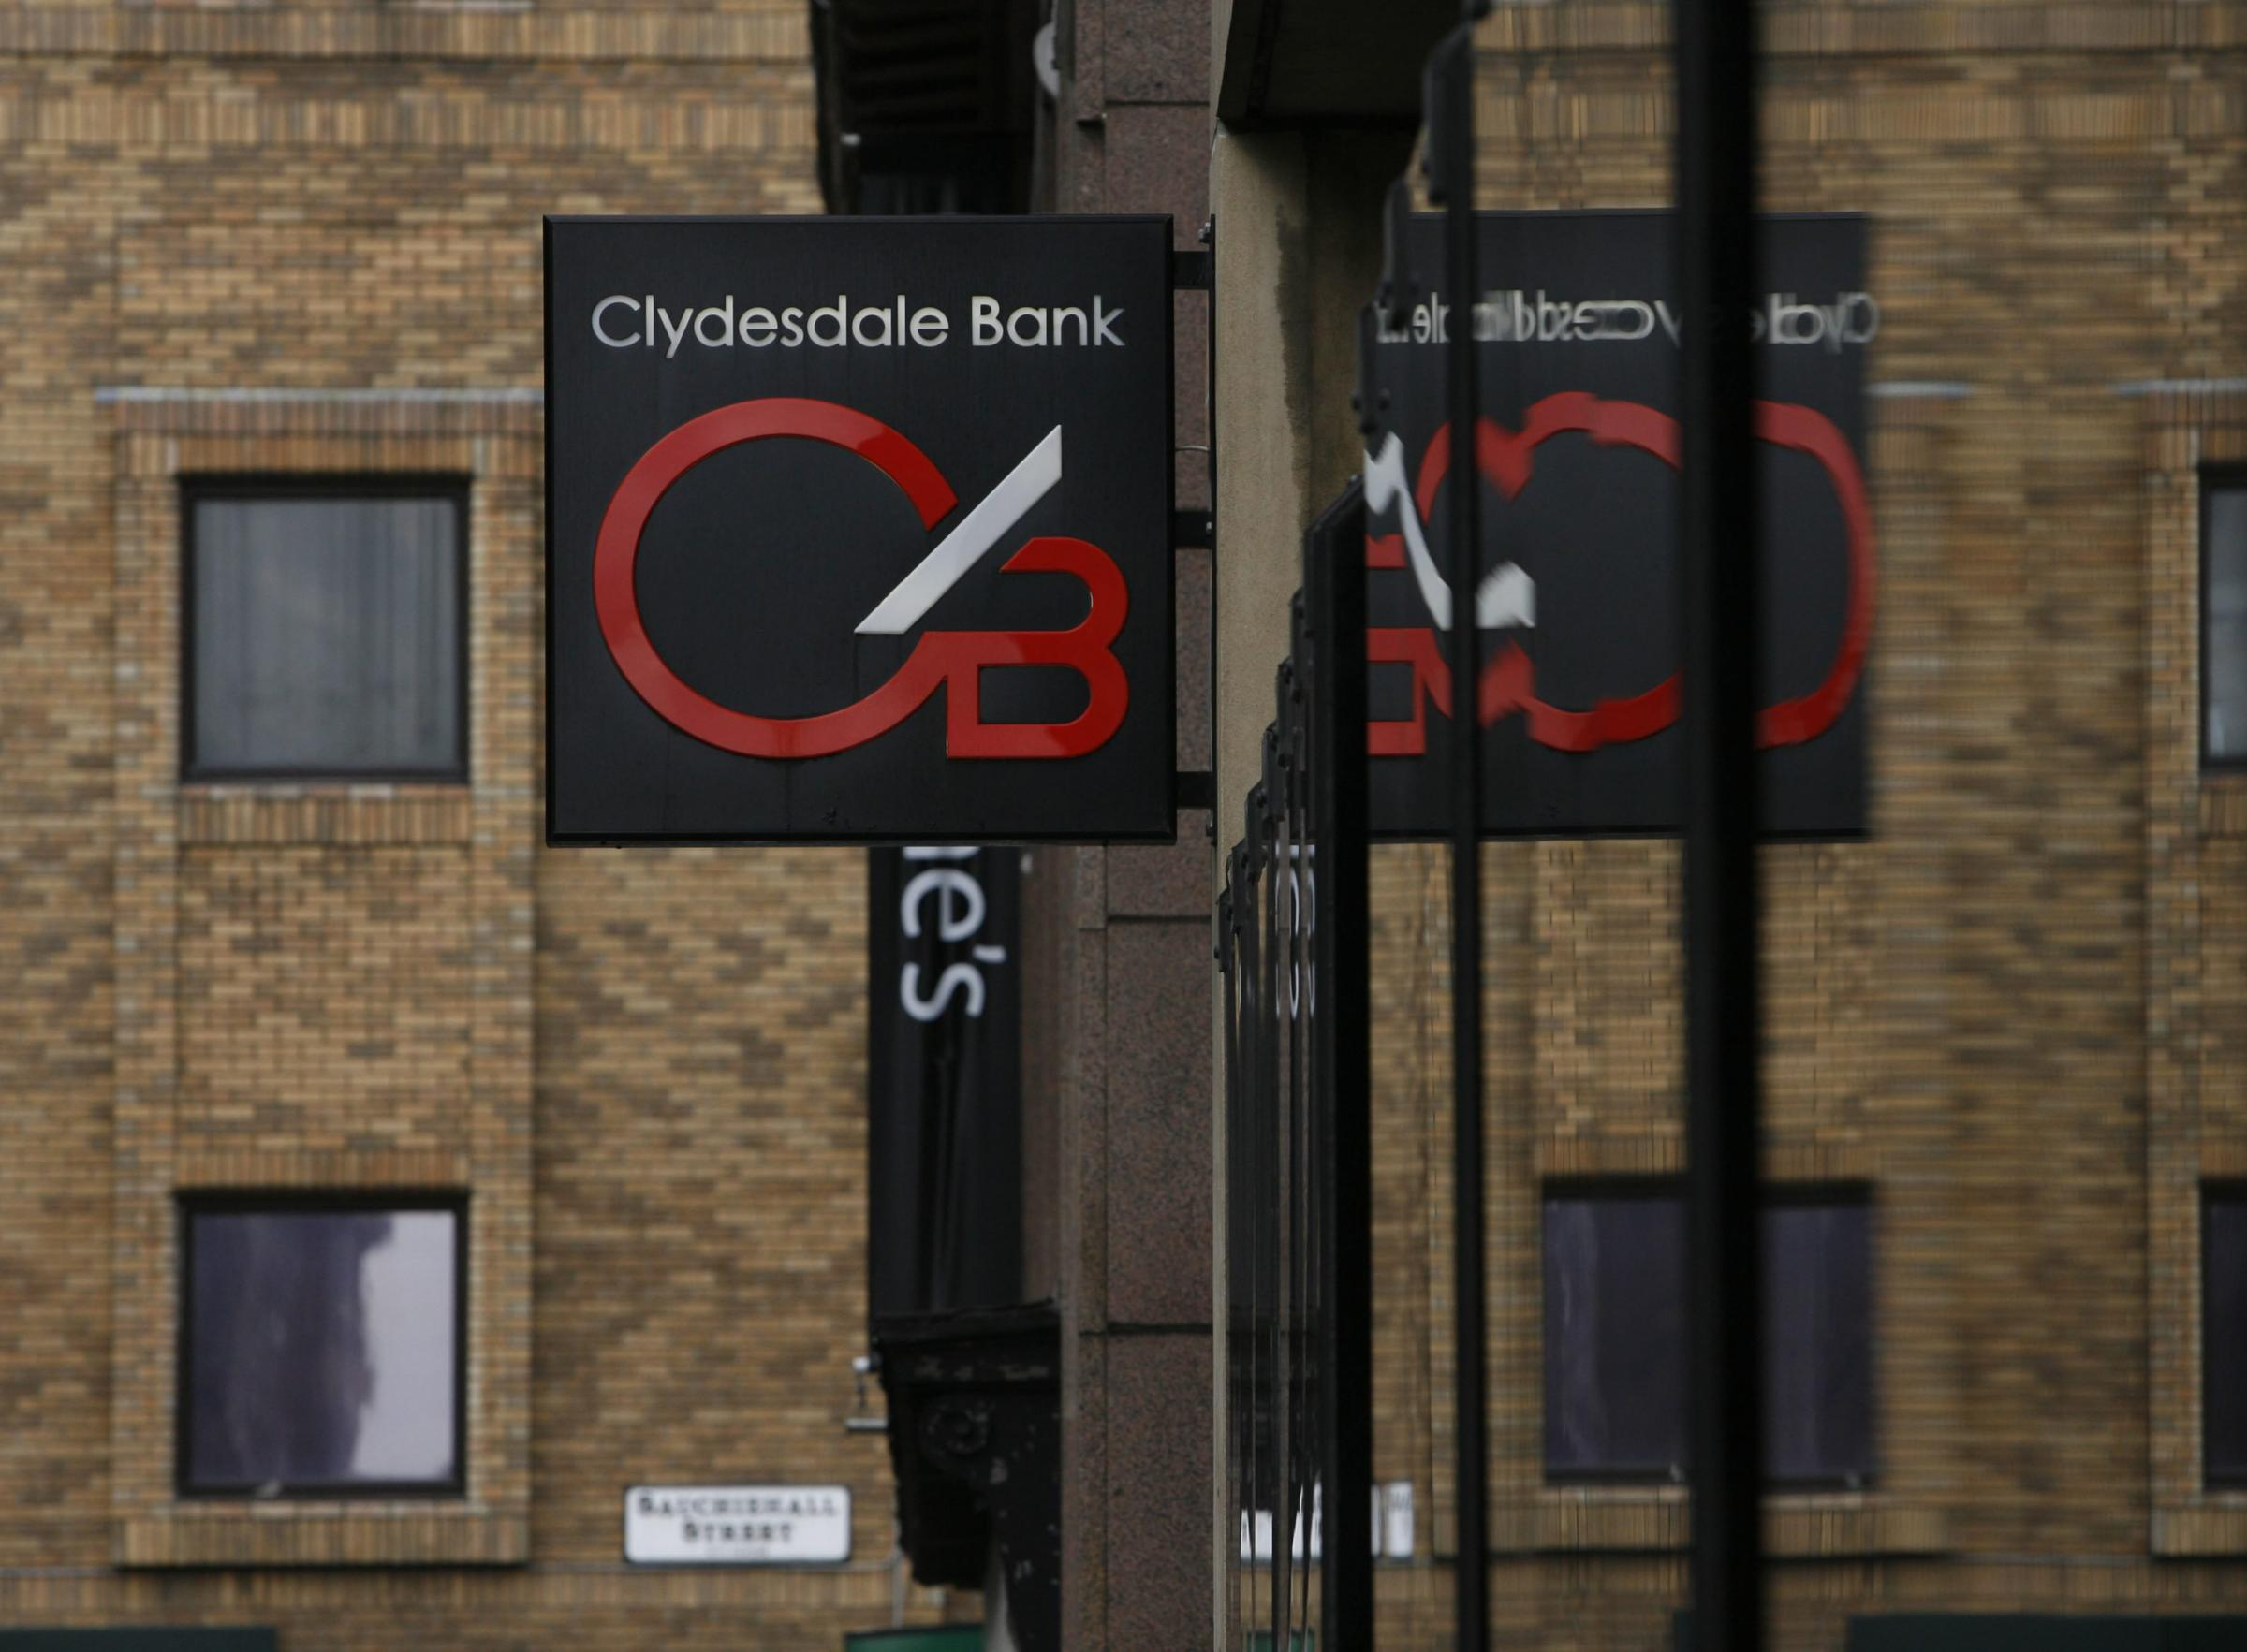 Bank will face multi-million pound loan damages case